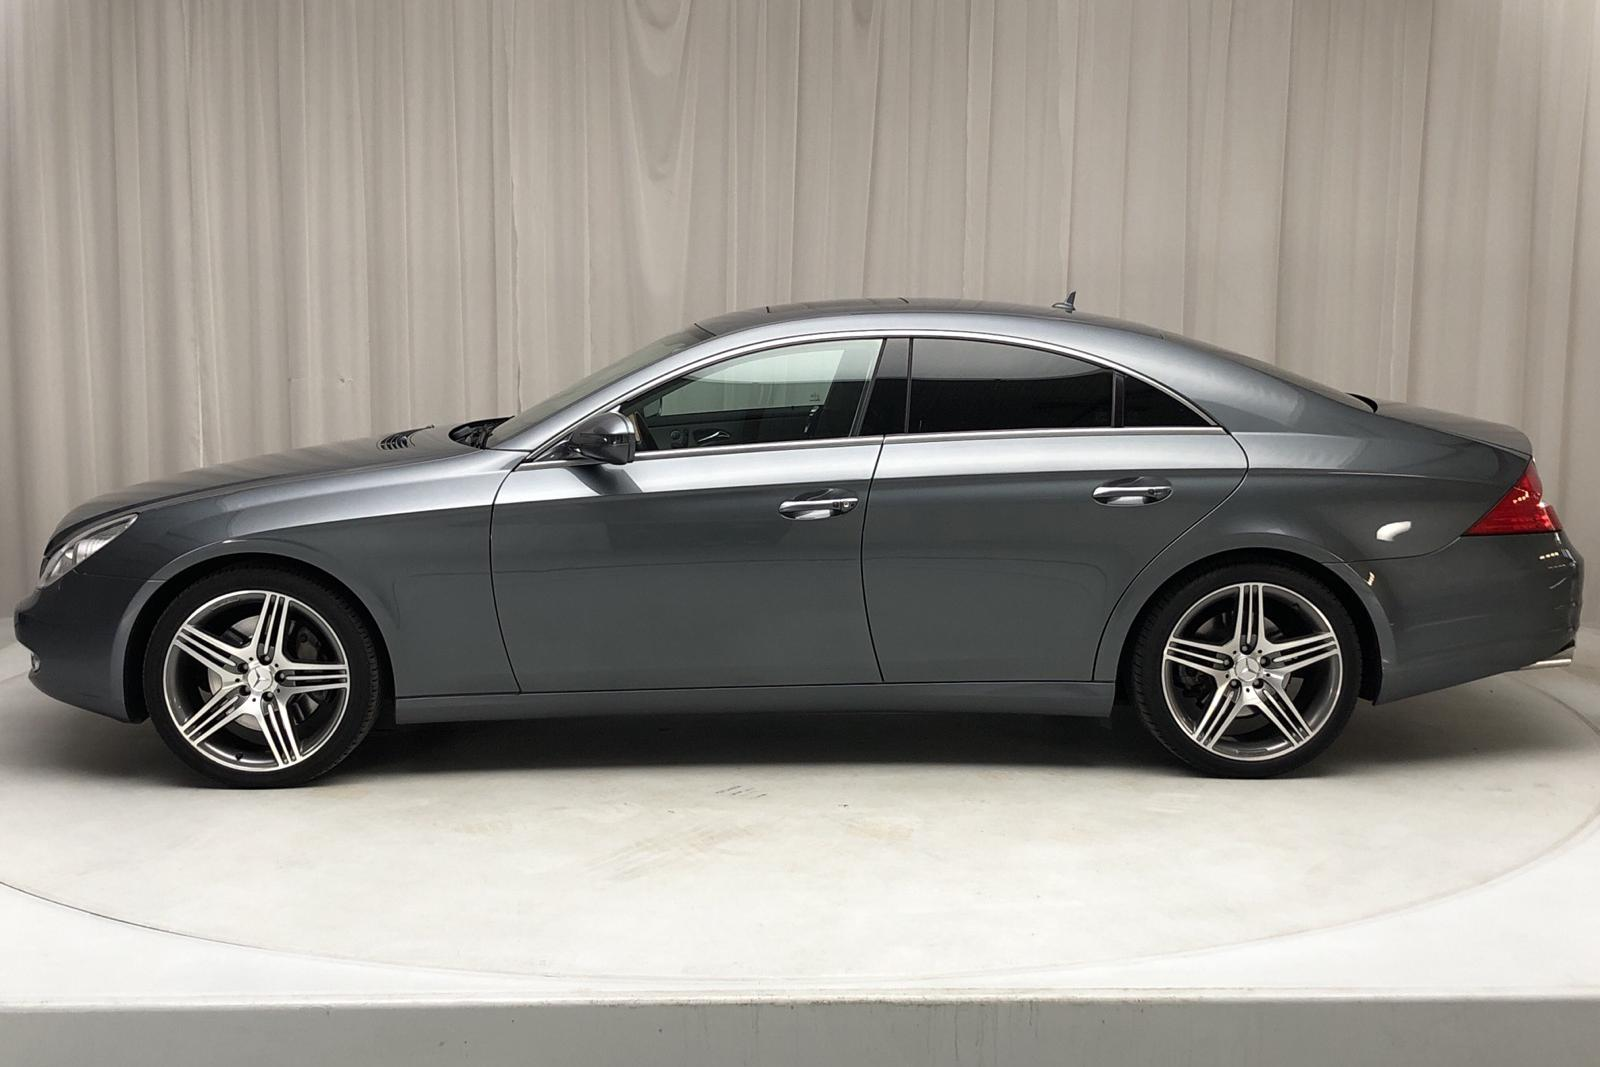 Mercedes CLS 500 (388hk) - 87 000 km - Automatic - Dark Grey - 2008